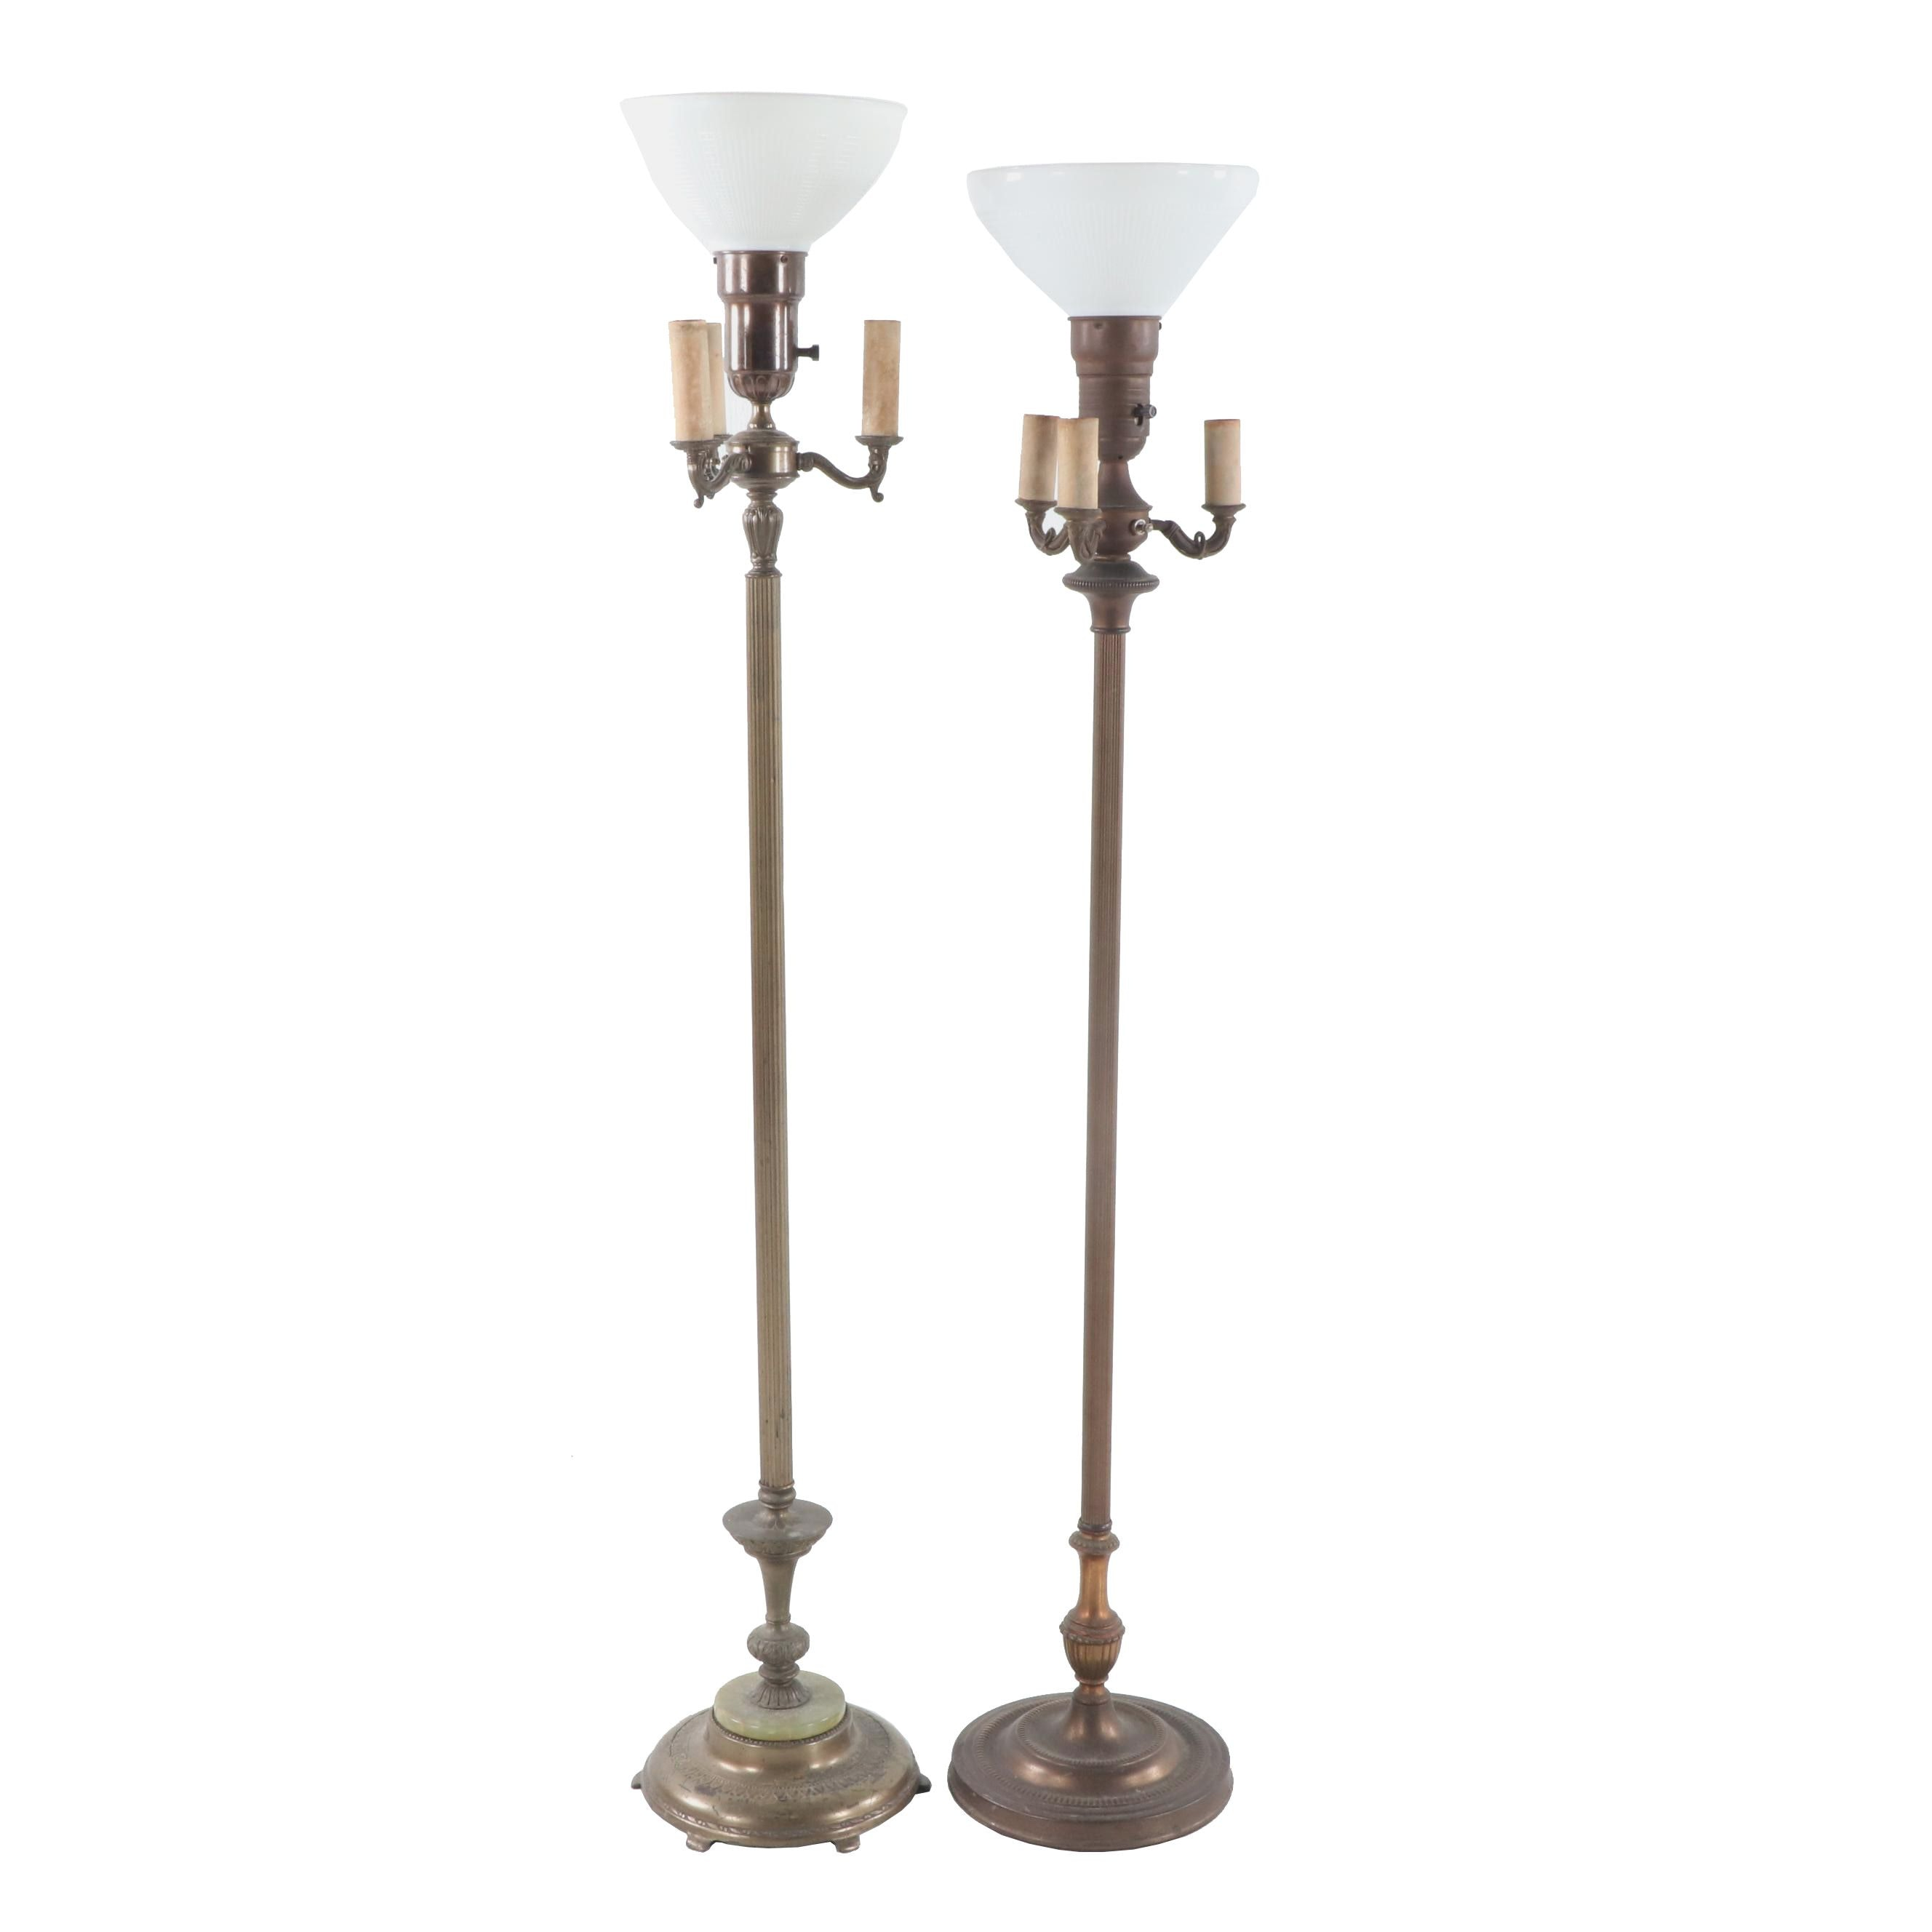 Metal Torchiere Candelabra Floor Lamps, Early 20th Century